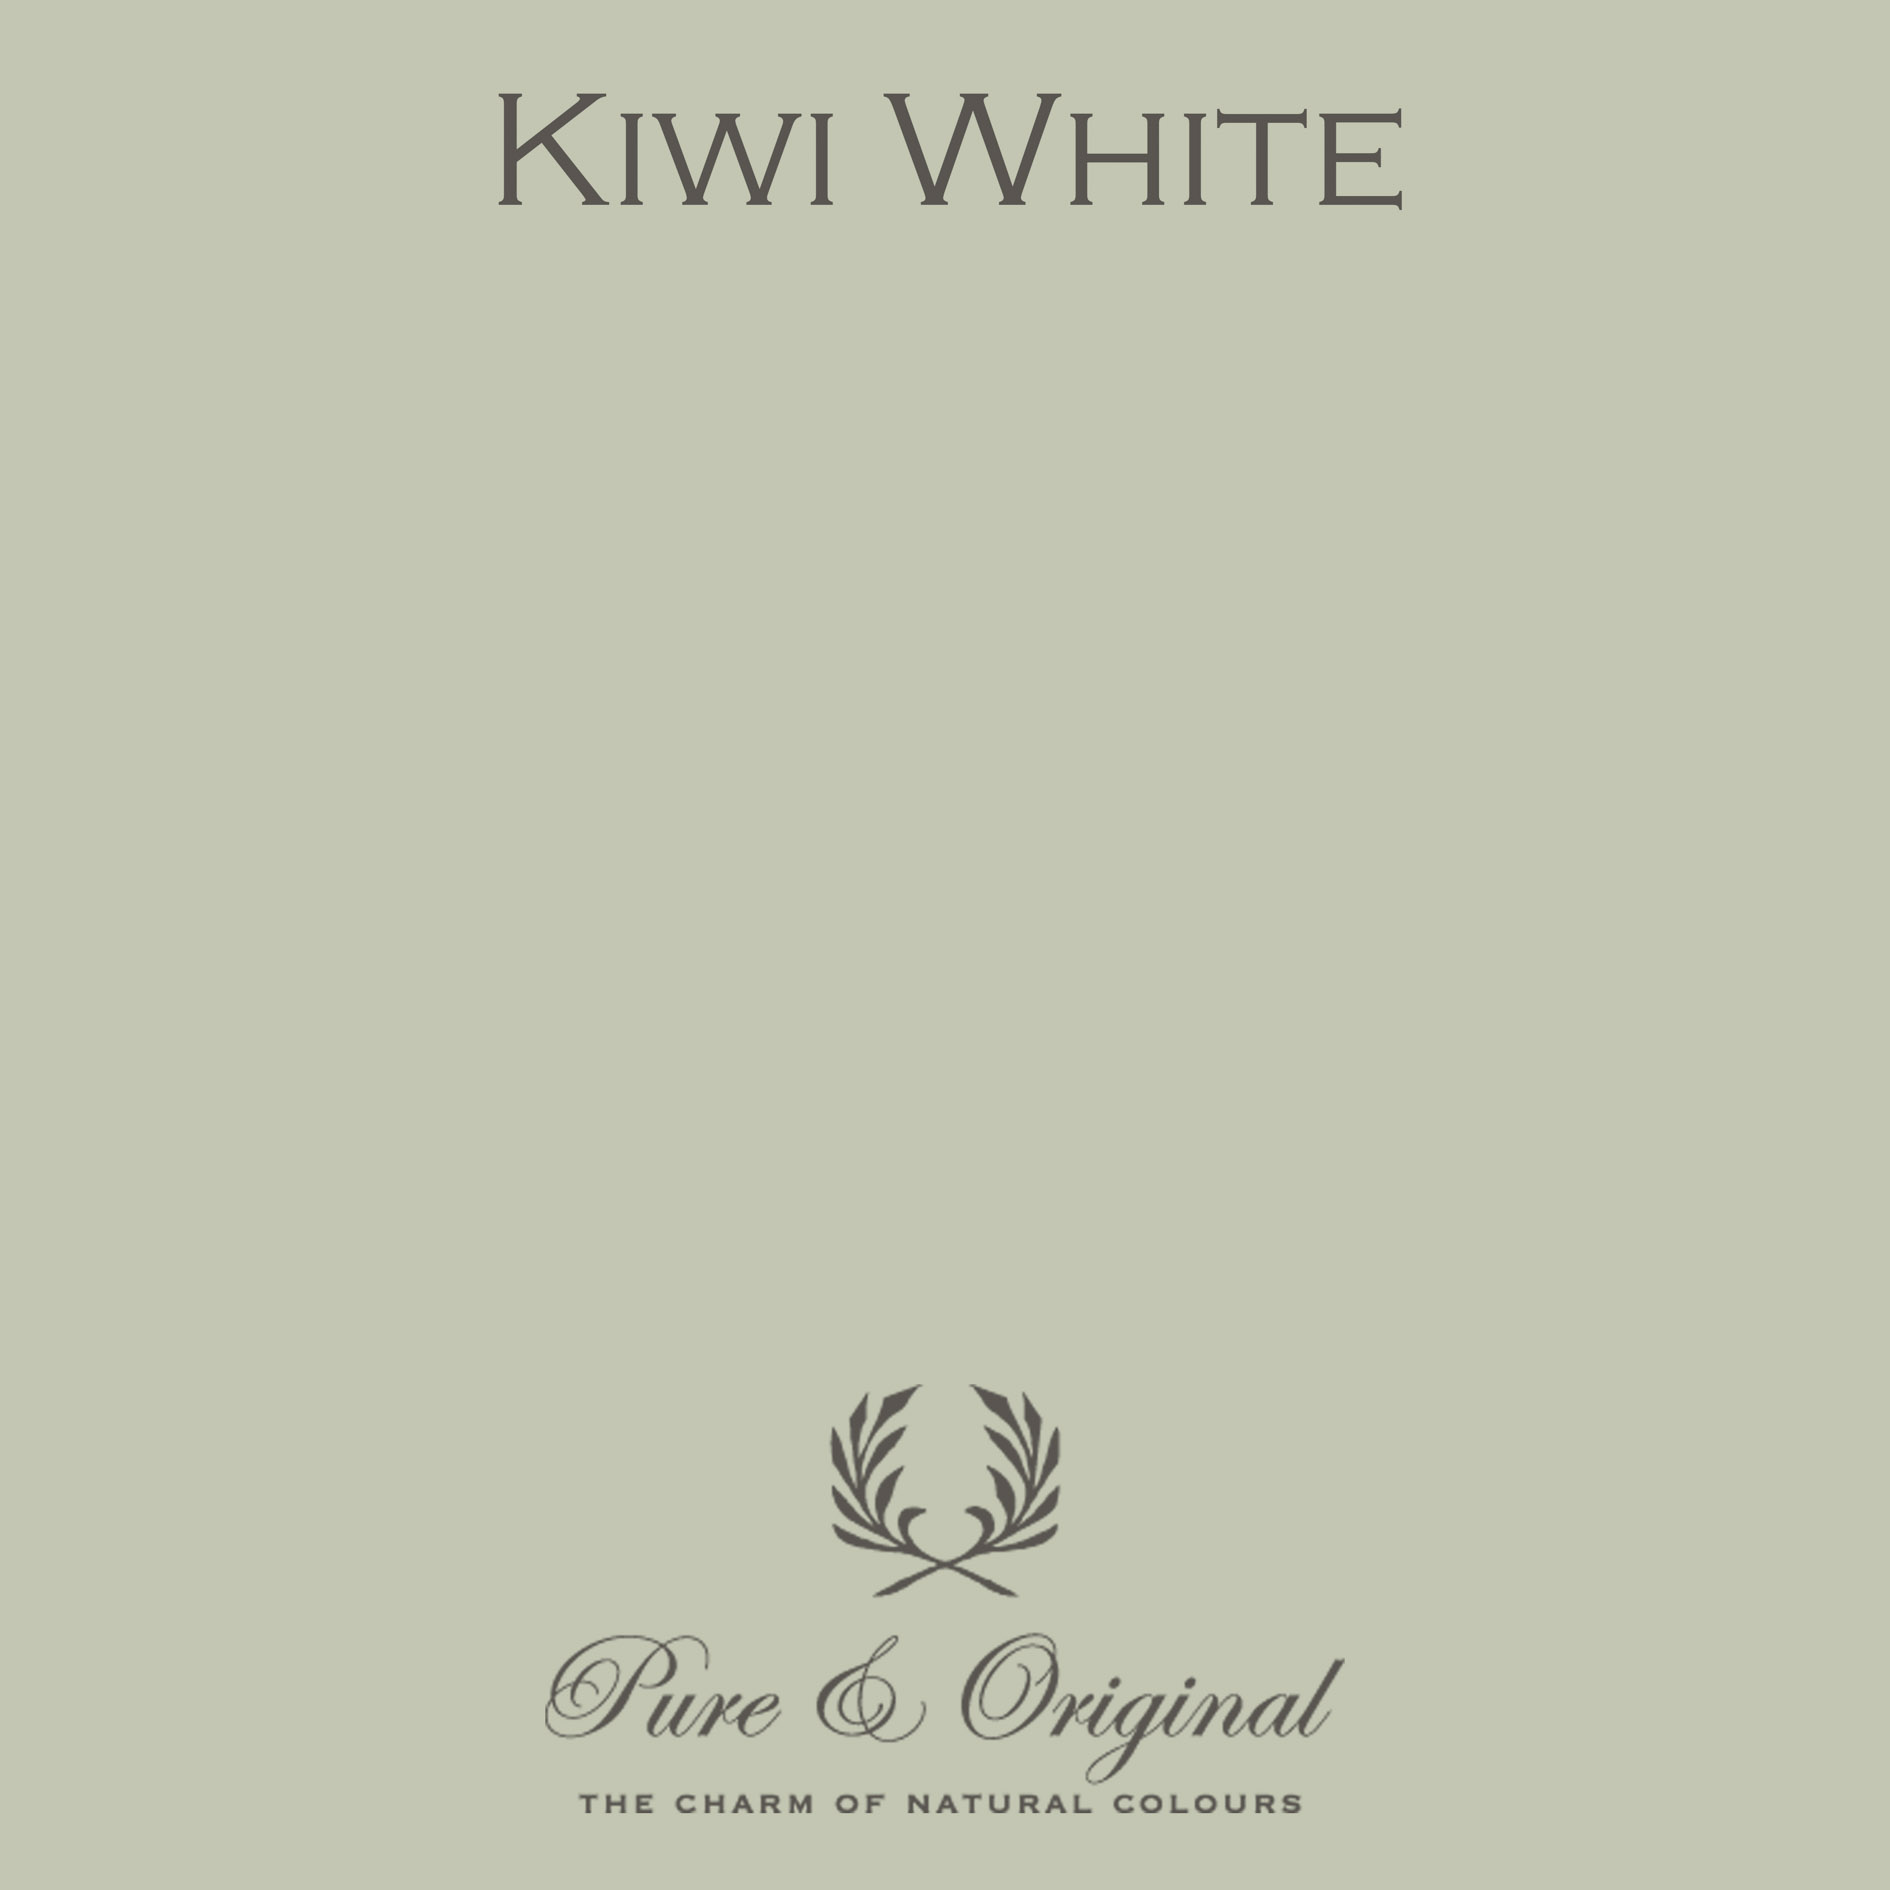 Pure & Original Kiwi White